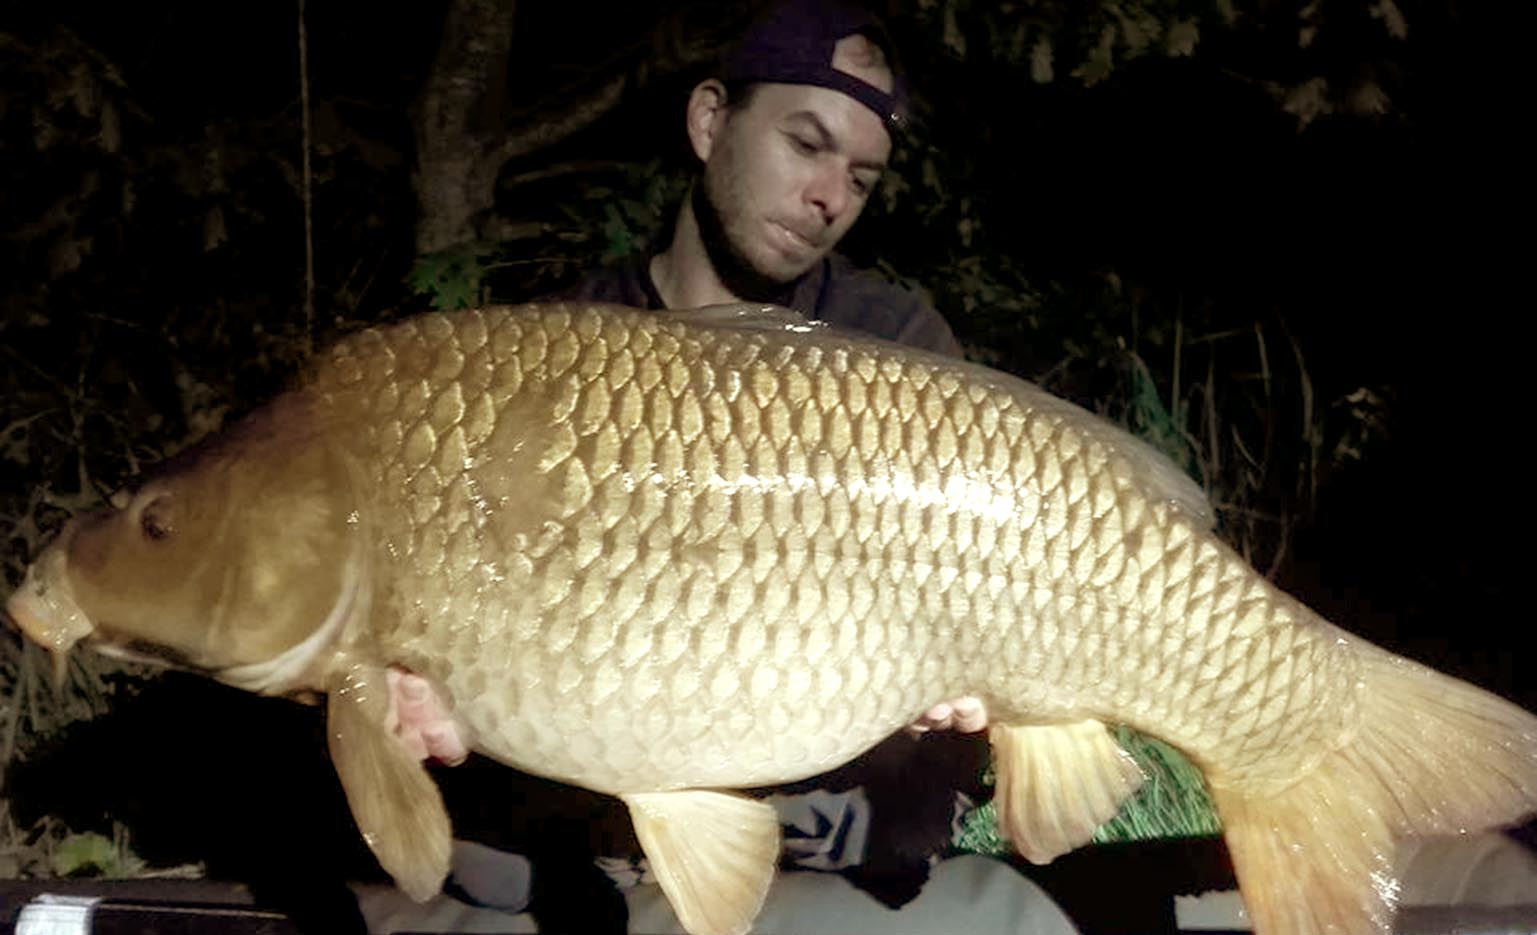 Yannick Ducret - Field Tester - Caught on Dynamic Washed Out Mango & Cream Boilies